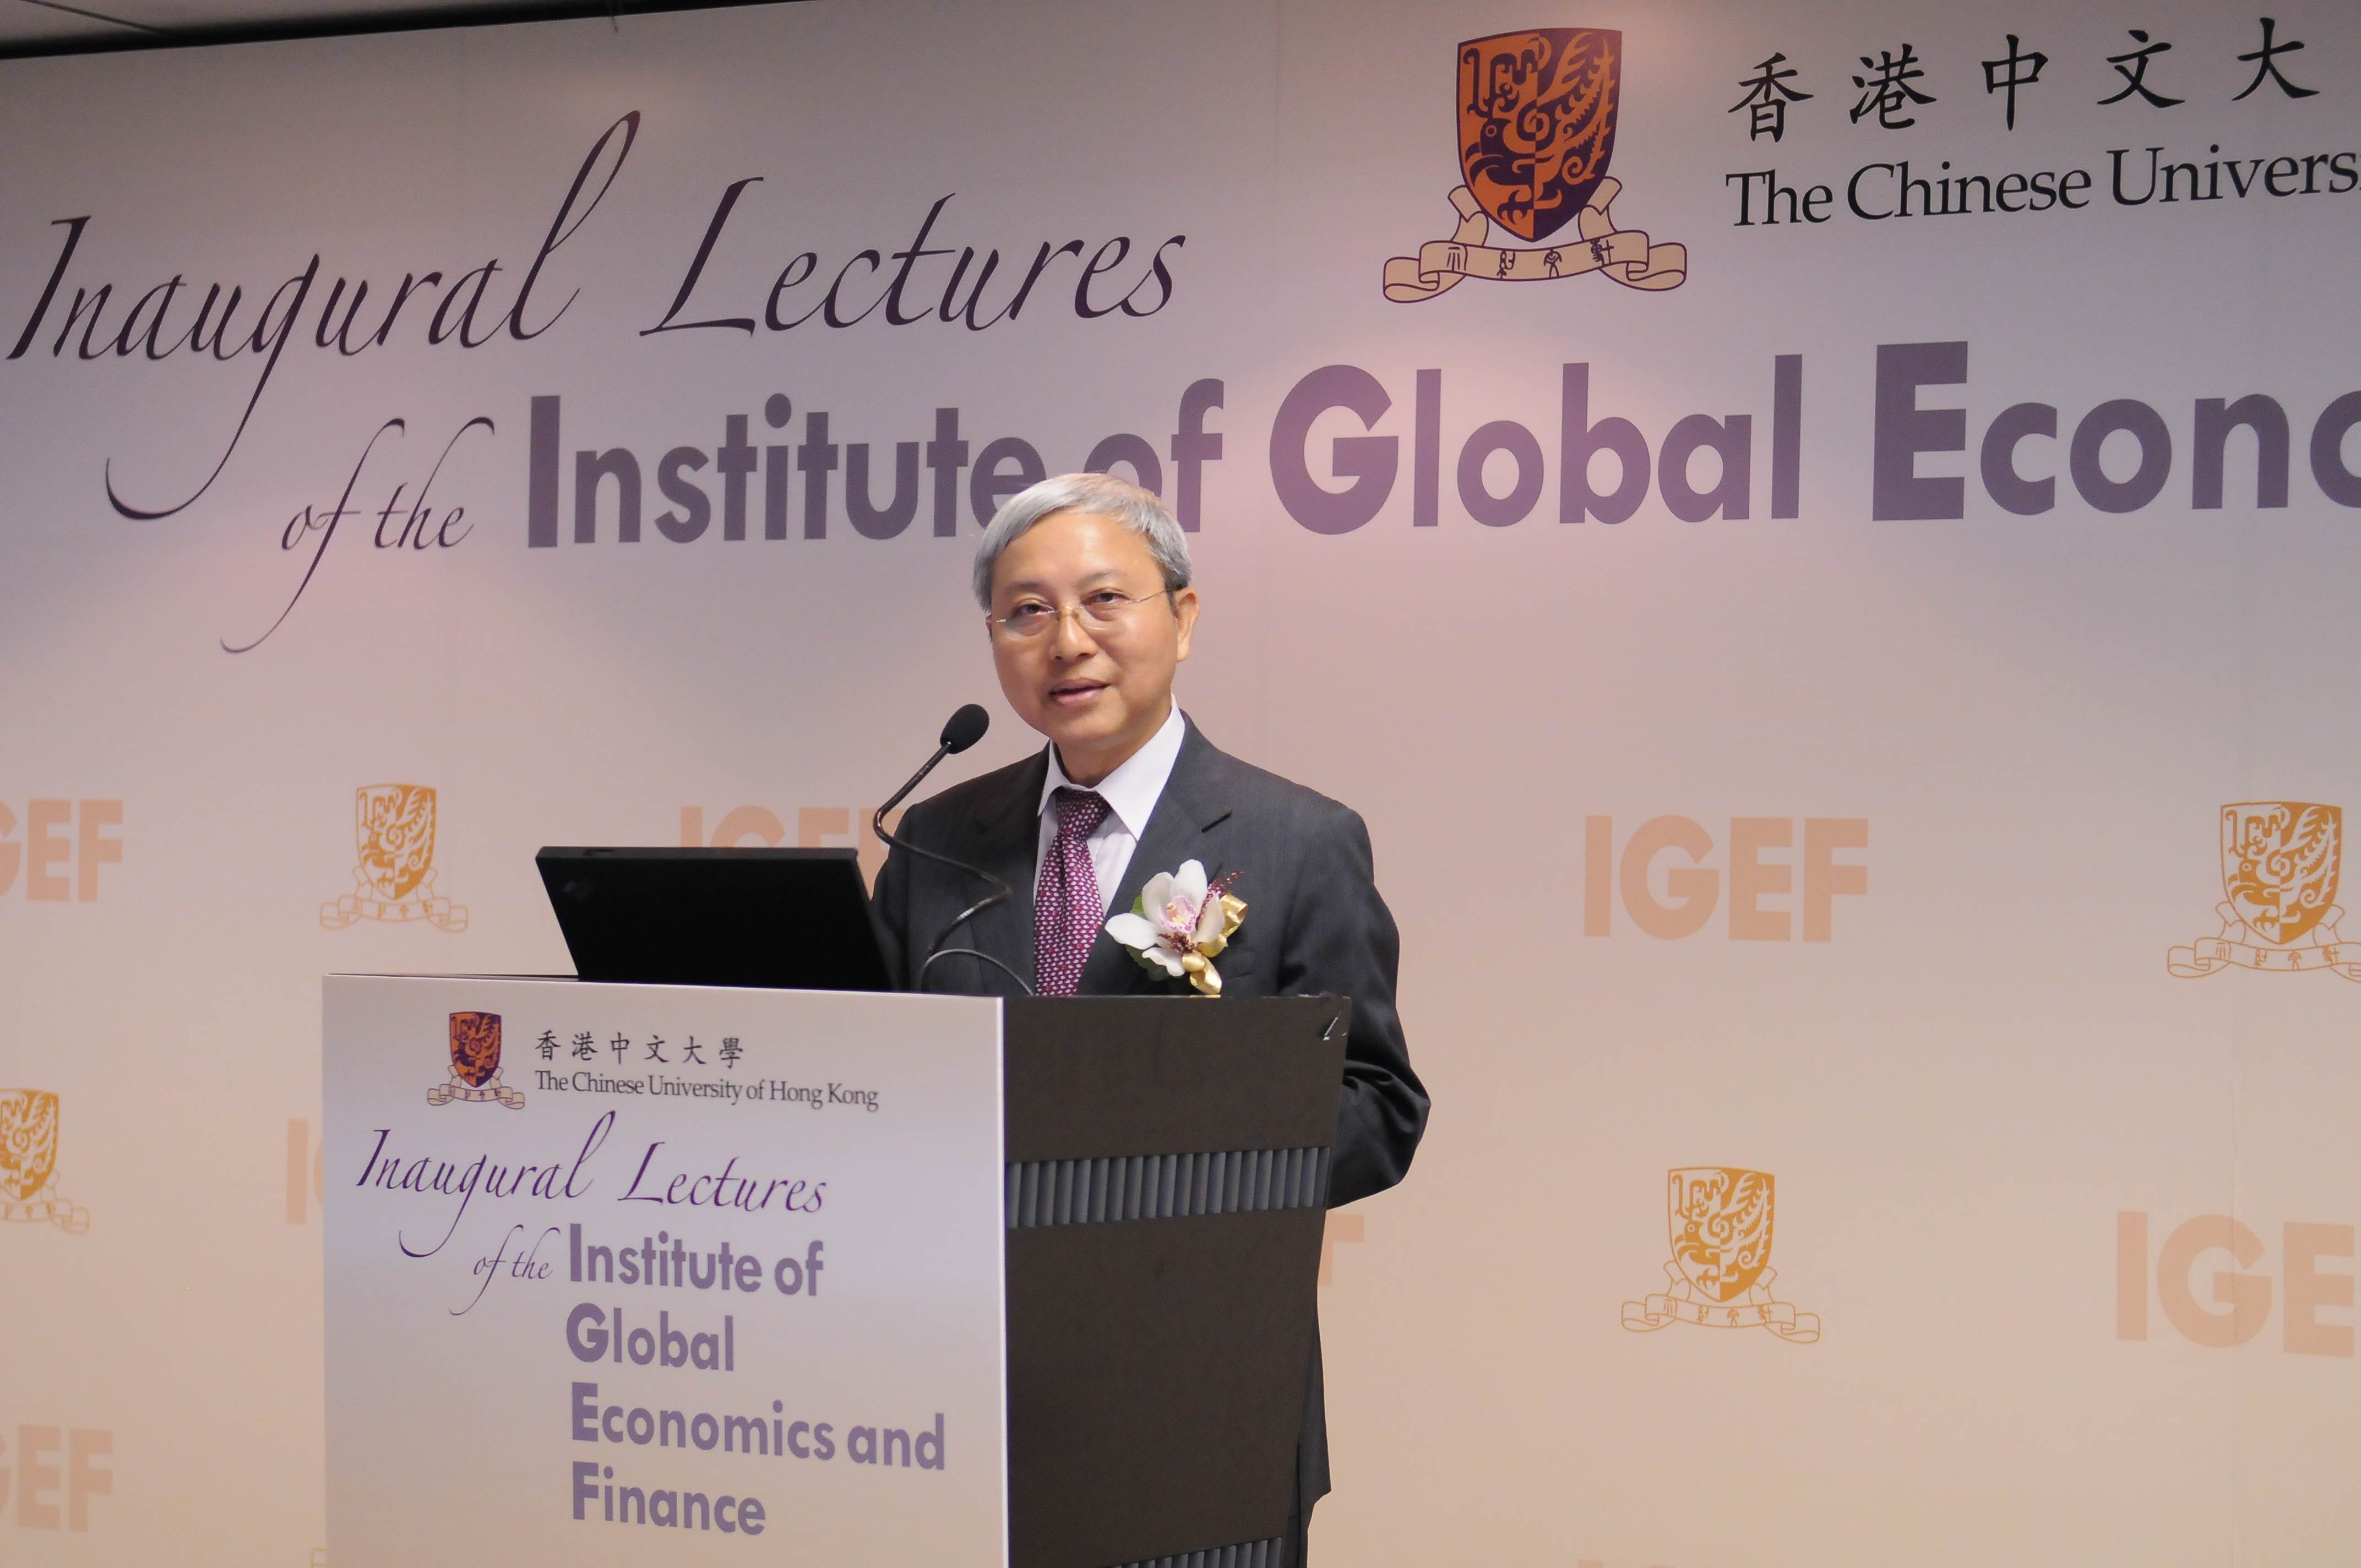 Welcoming address by Prof. Liu Pak-wai, Director of the Institute of Global Economics and Finance, CUHK.